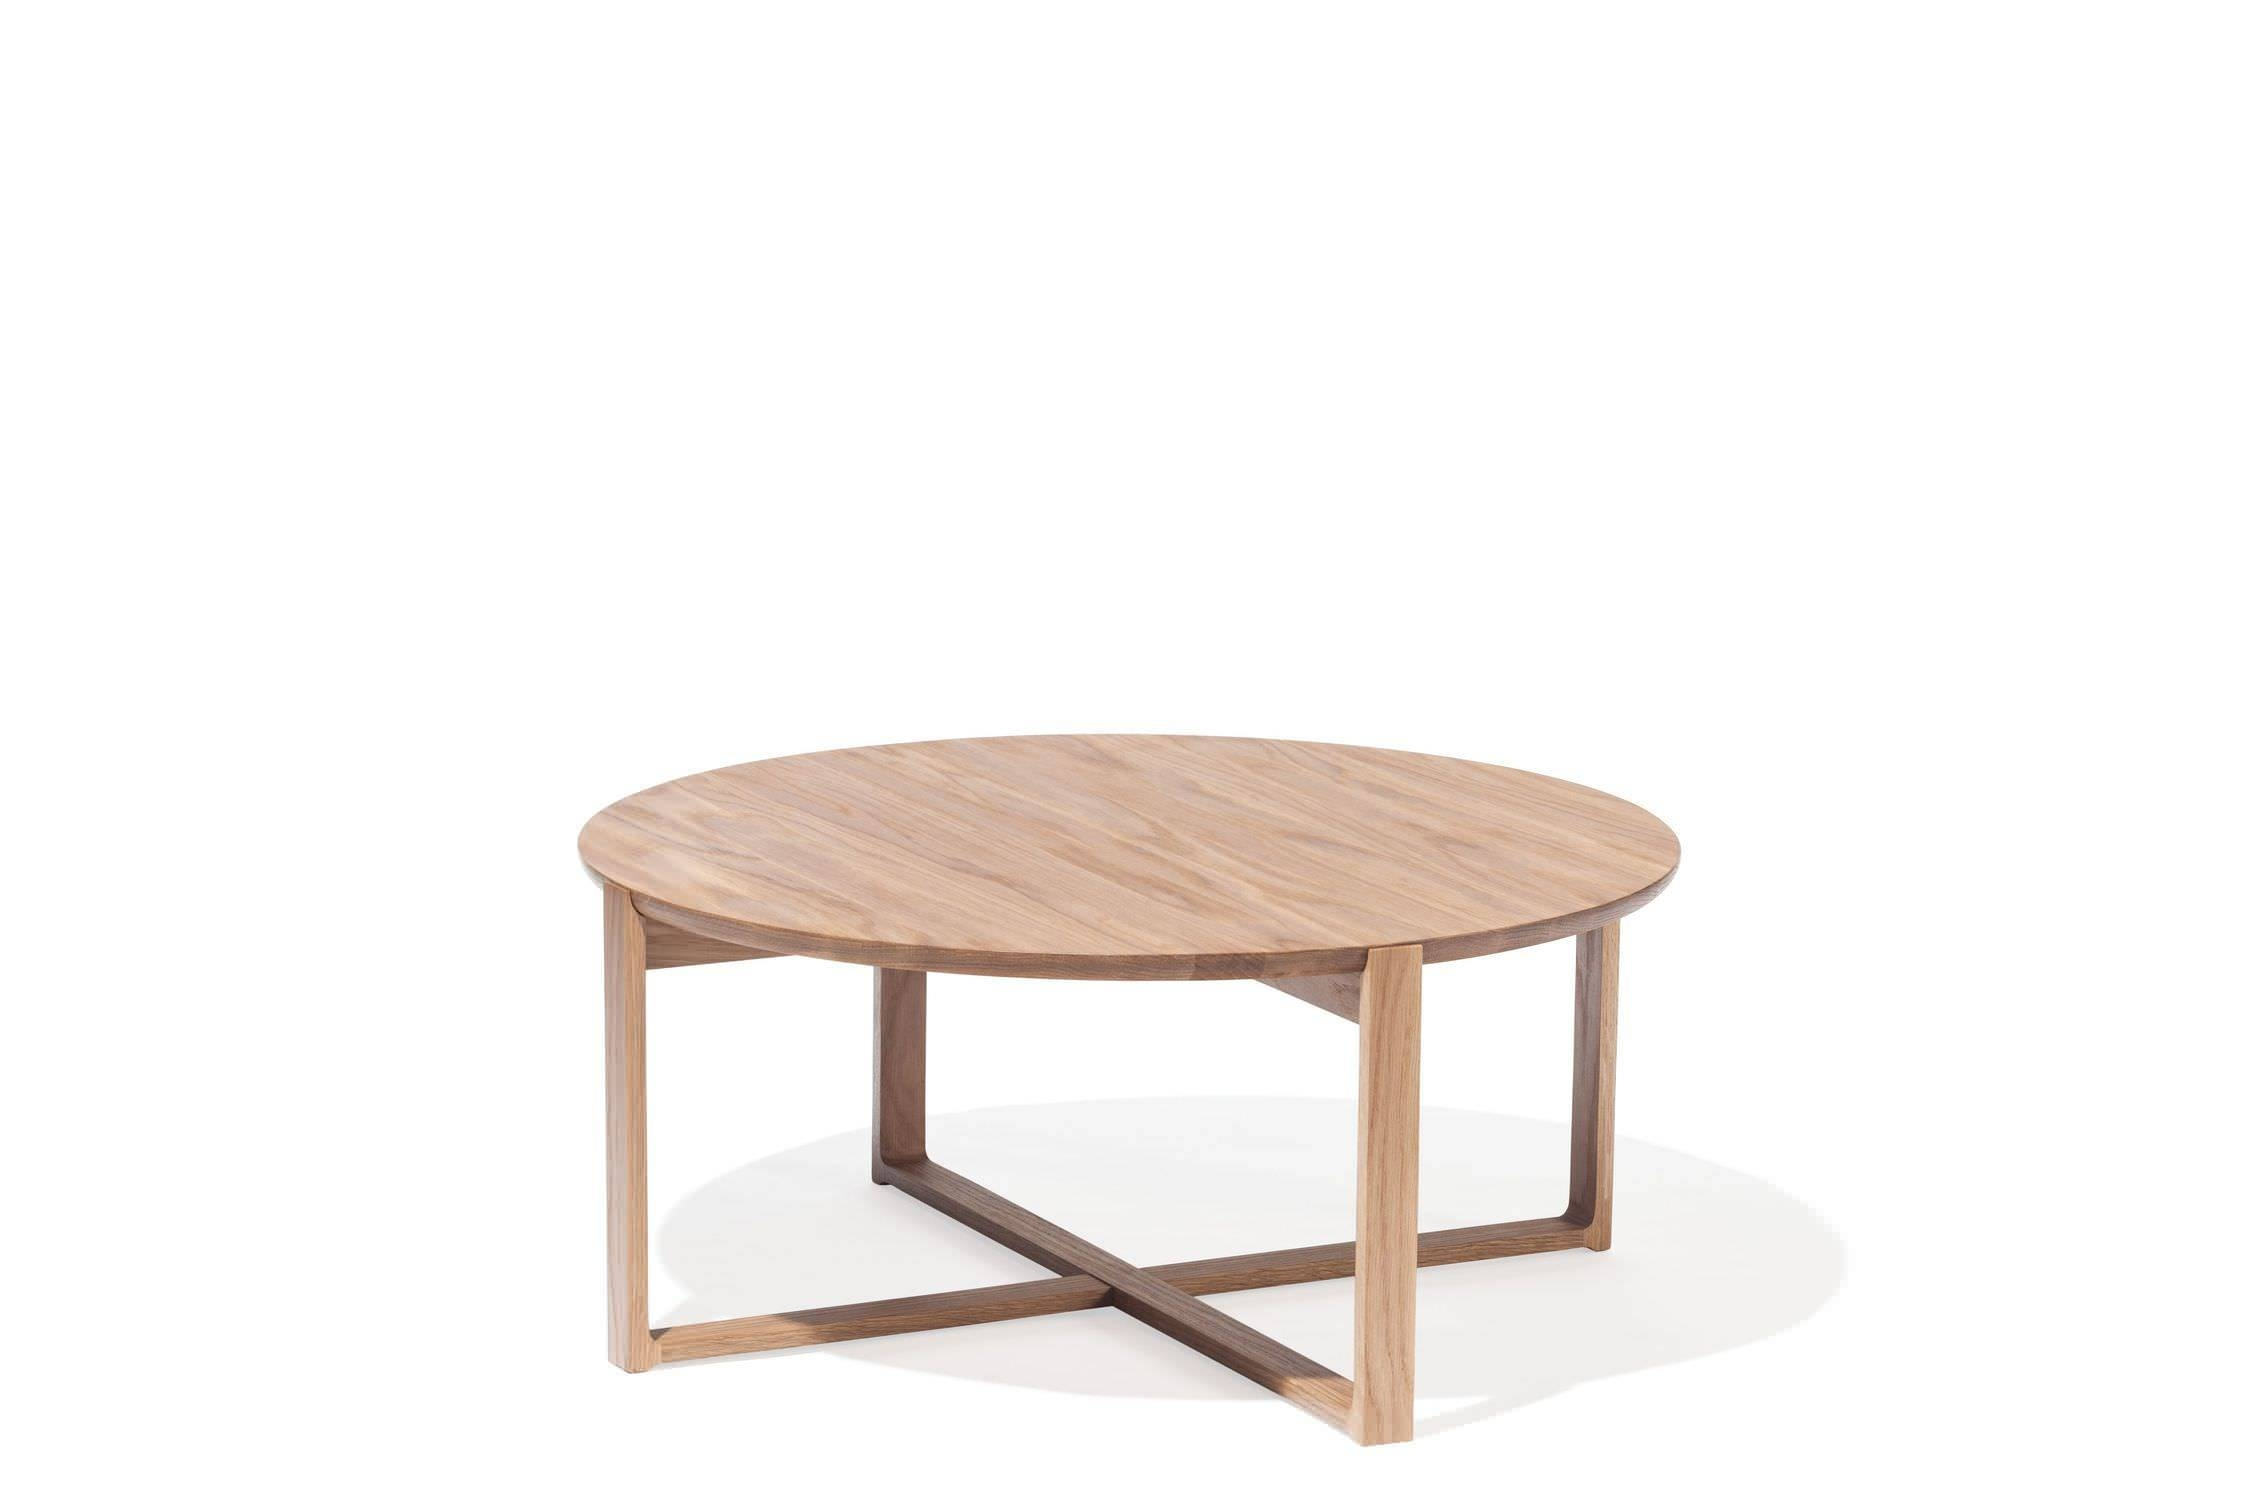 30 Inspirations of Beech Coffee Tables